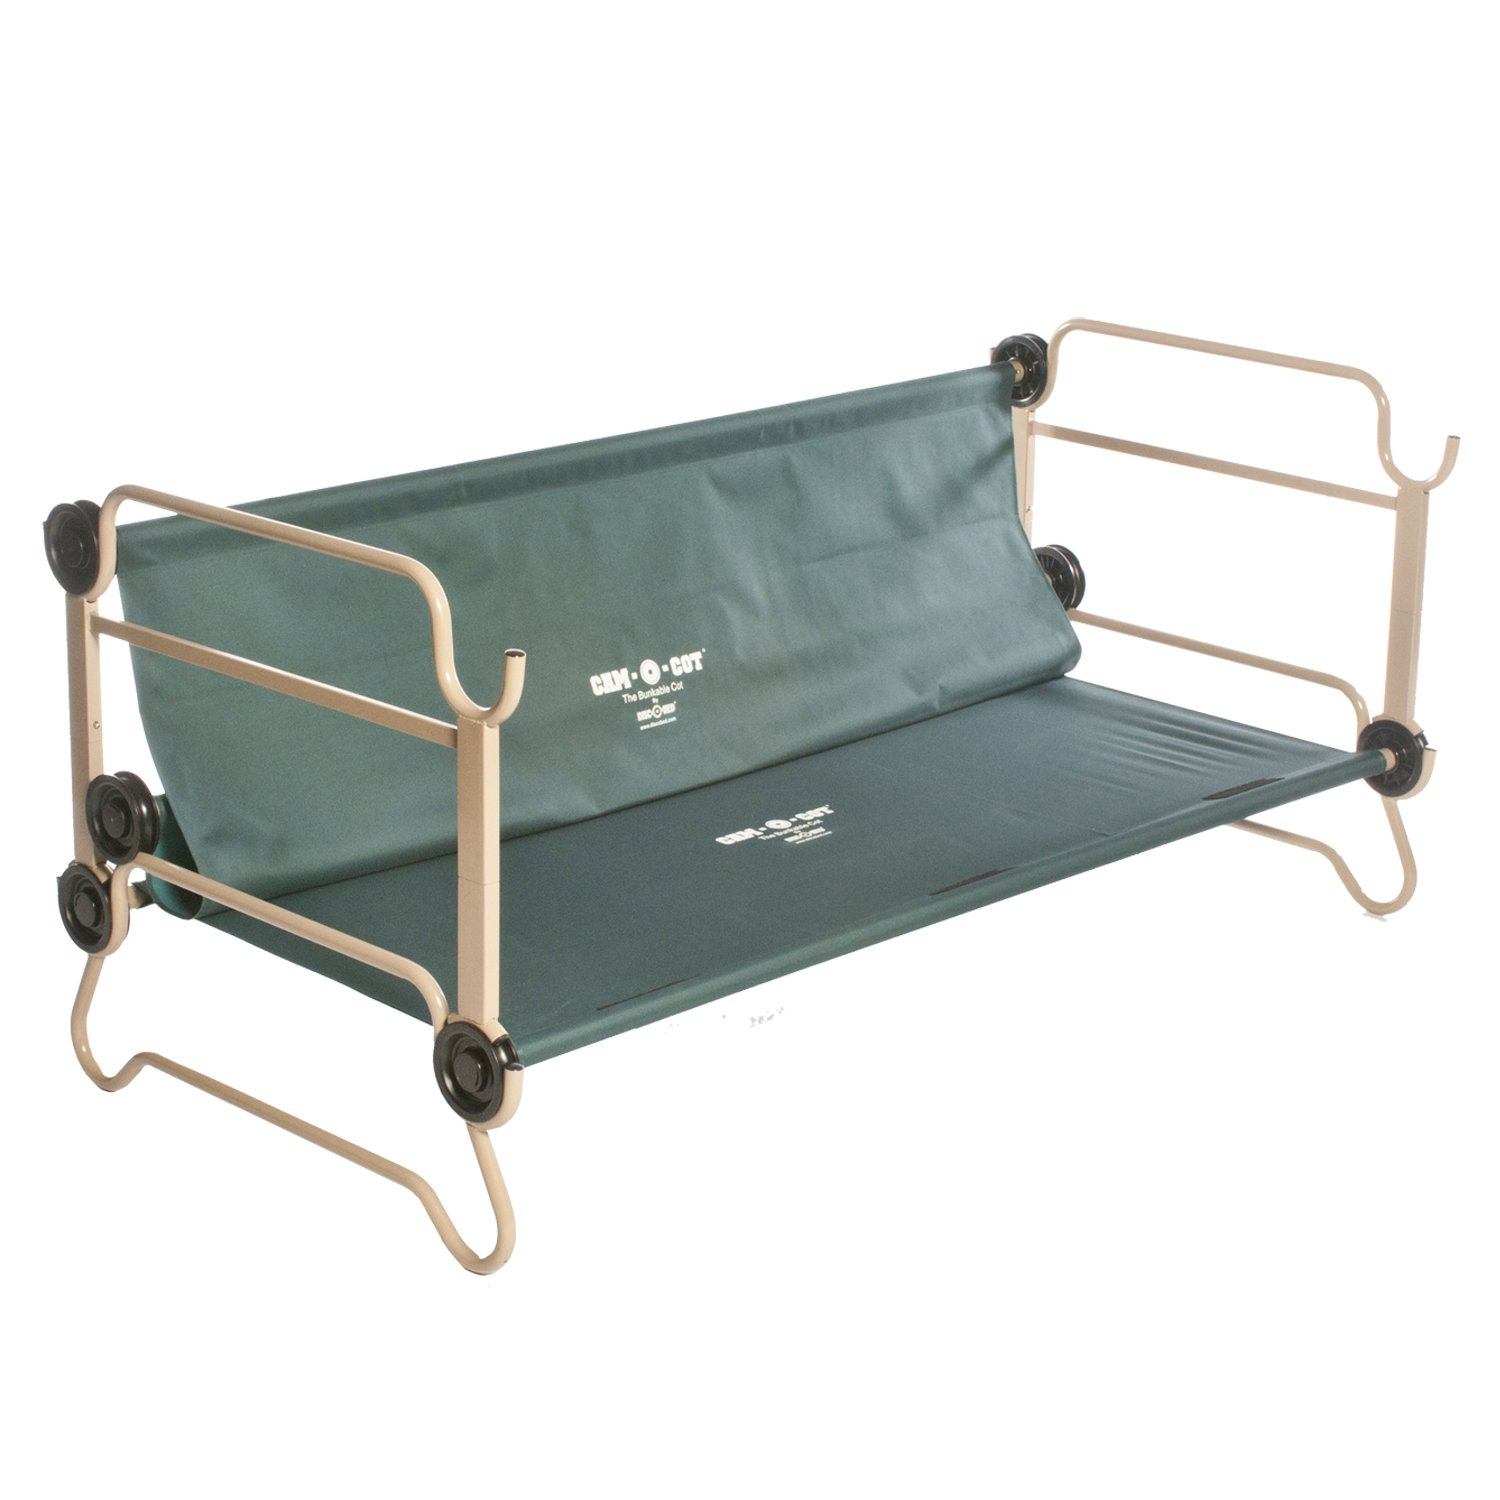 Disc O Bed Cam Bunk Cot With Organizers And Leg Extensions Large Amazoncouk Sports Outdoors